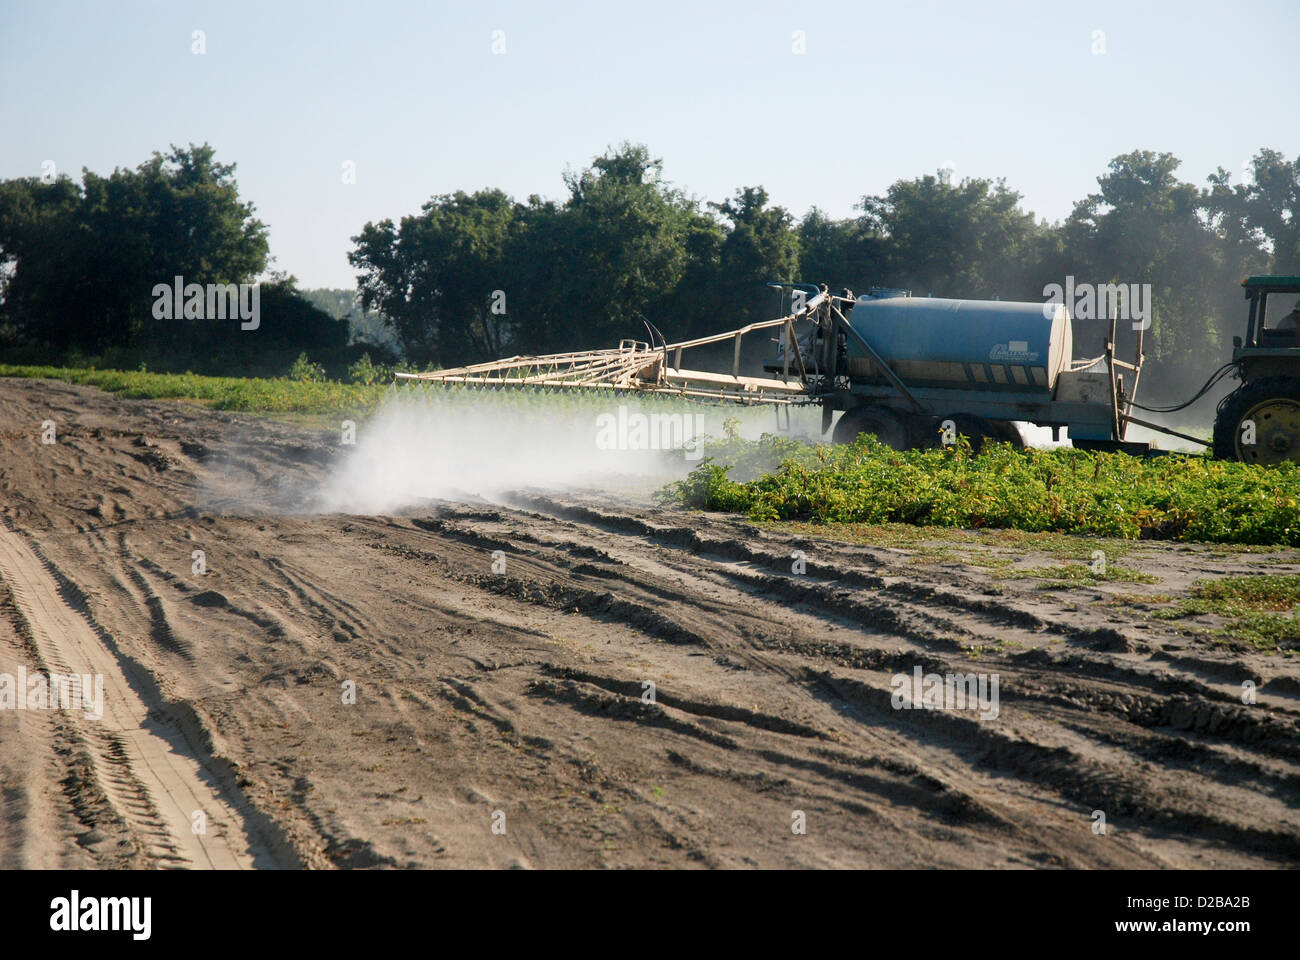 Chemical Spray On Crops - Stock Image